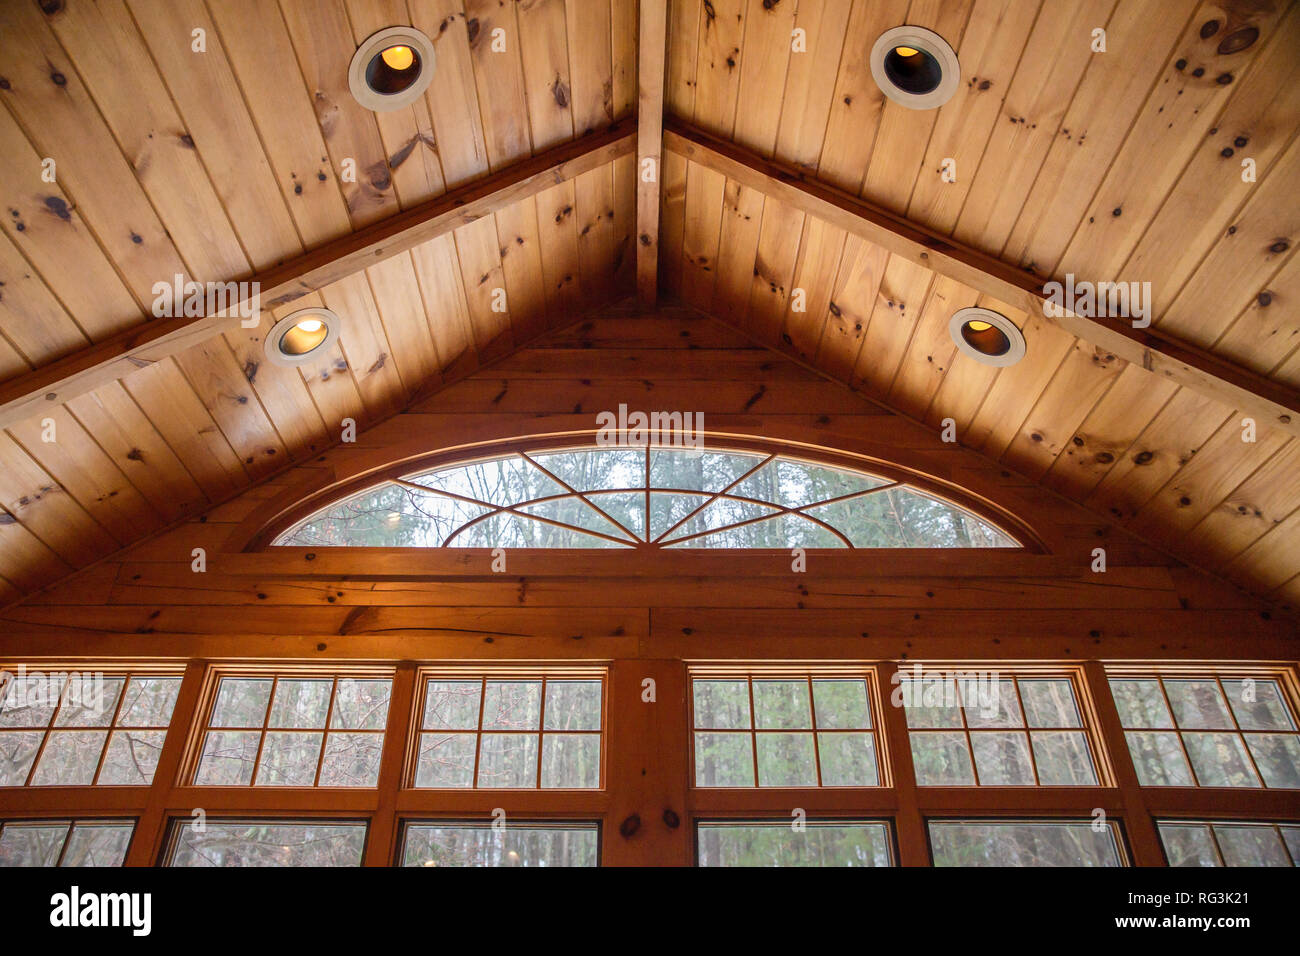 windows interior wood cabin - Stock Image